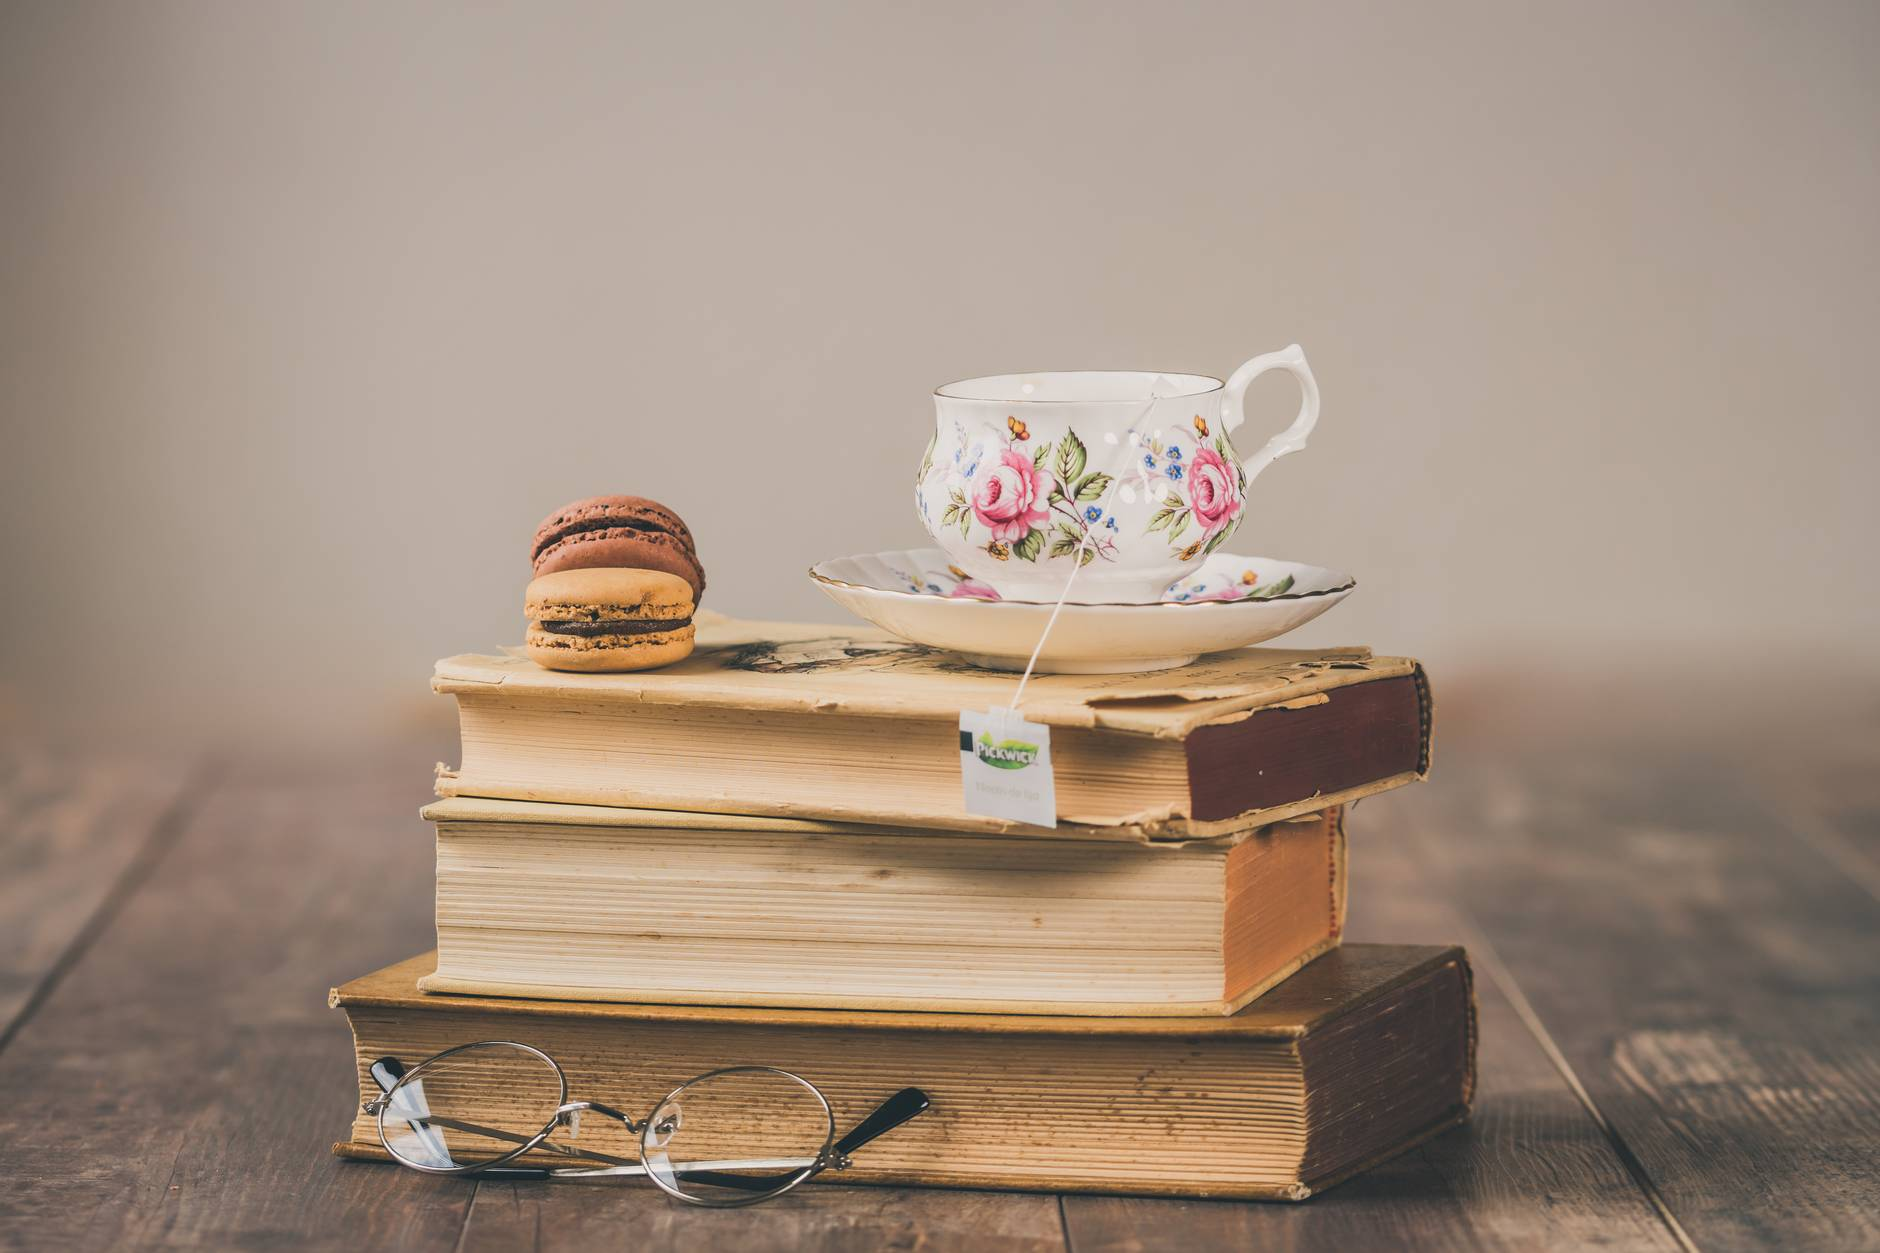 teacup on top of books